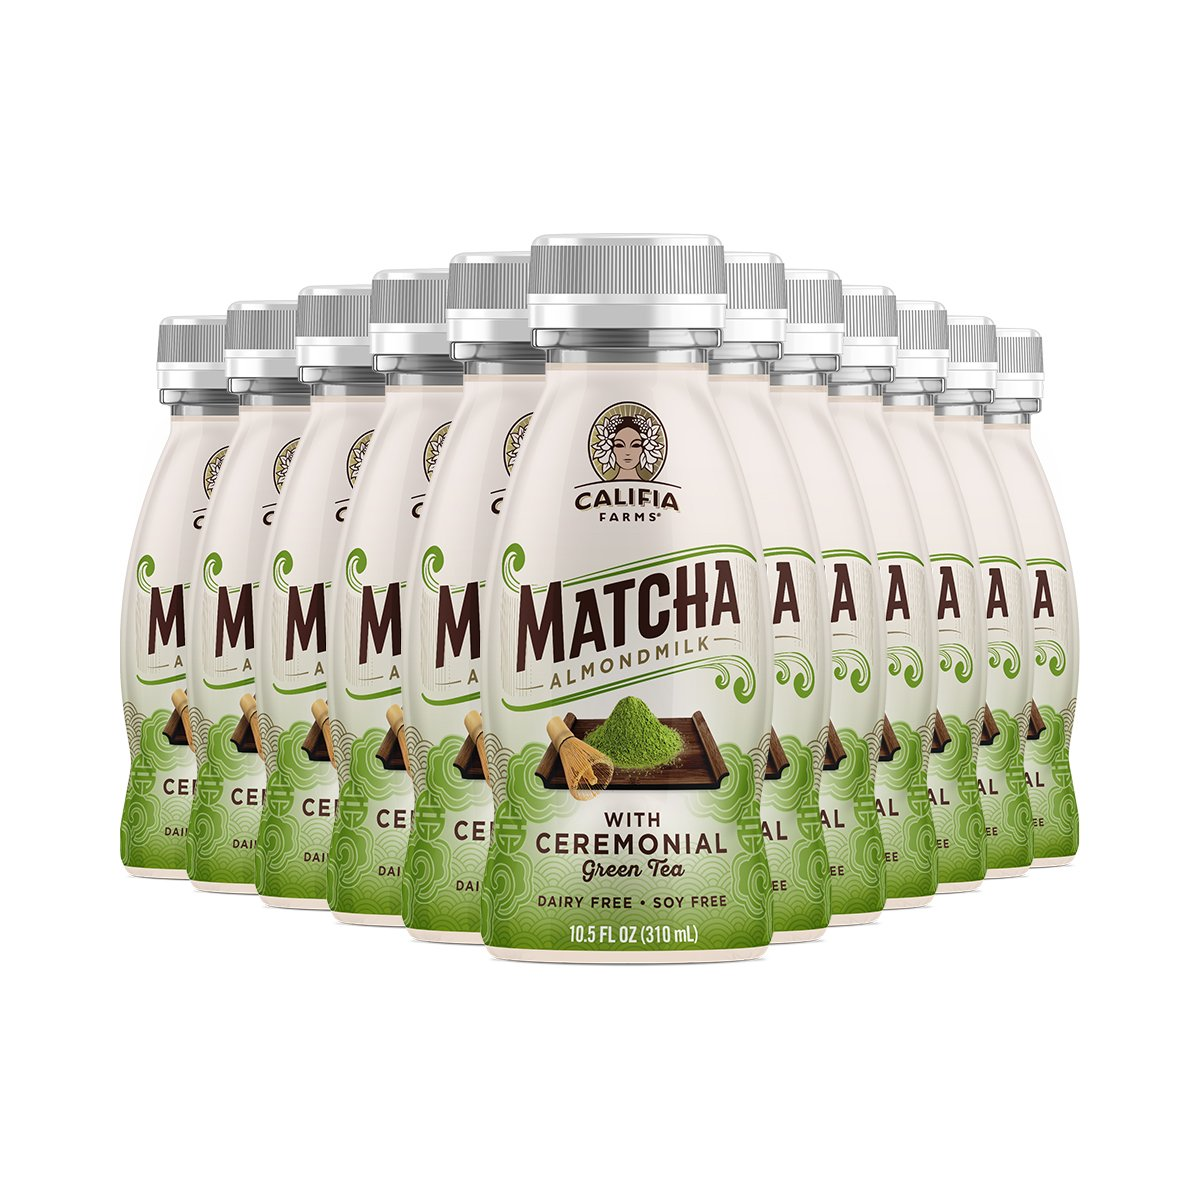 Amazon.com : Califia Farms Almondmilk, Dairy Free, With Ceremonial Green Tea, Matcha, 10.5 Oz (Pack of 12) : Grocery & Gourmet Food